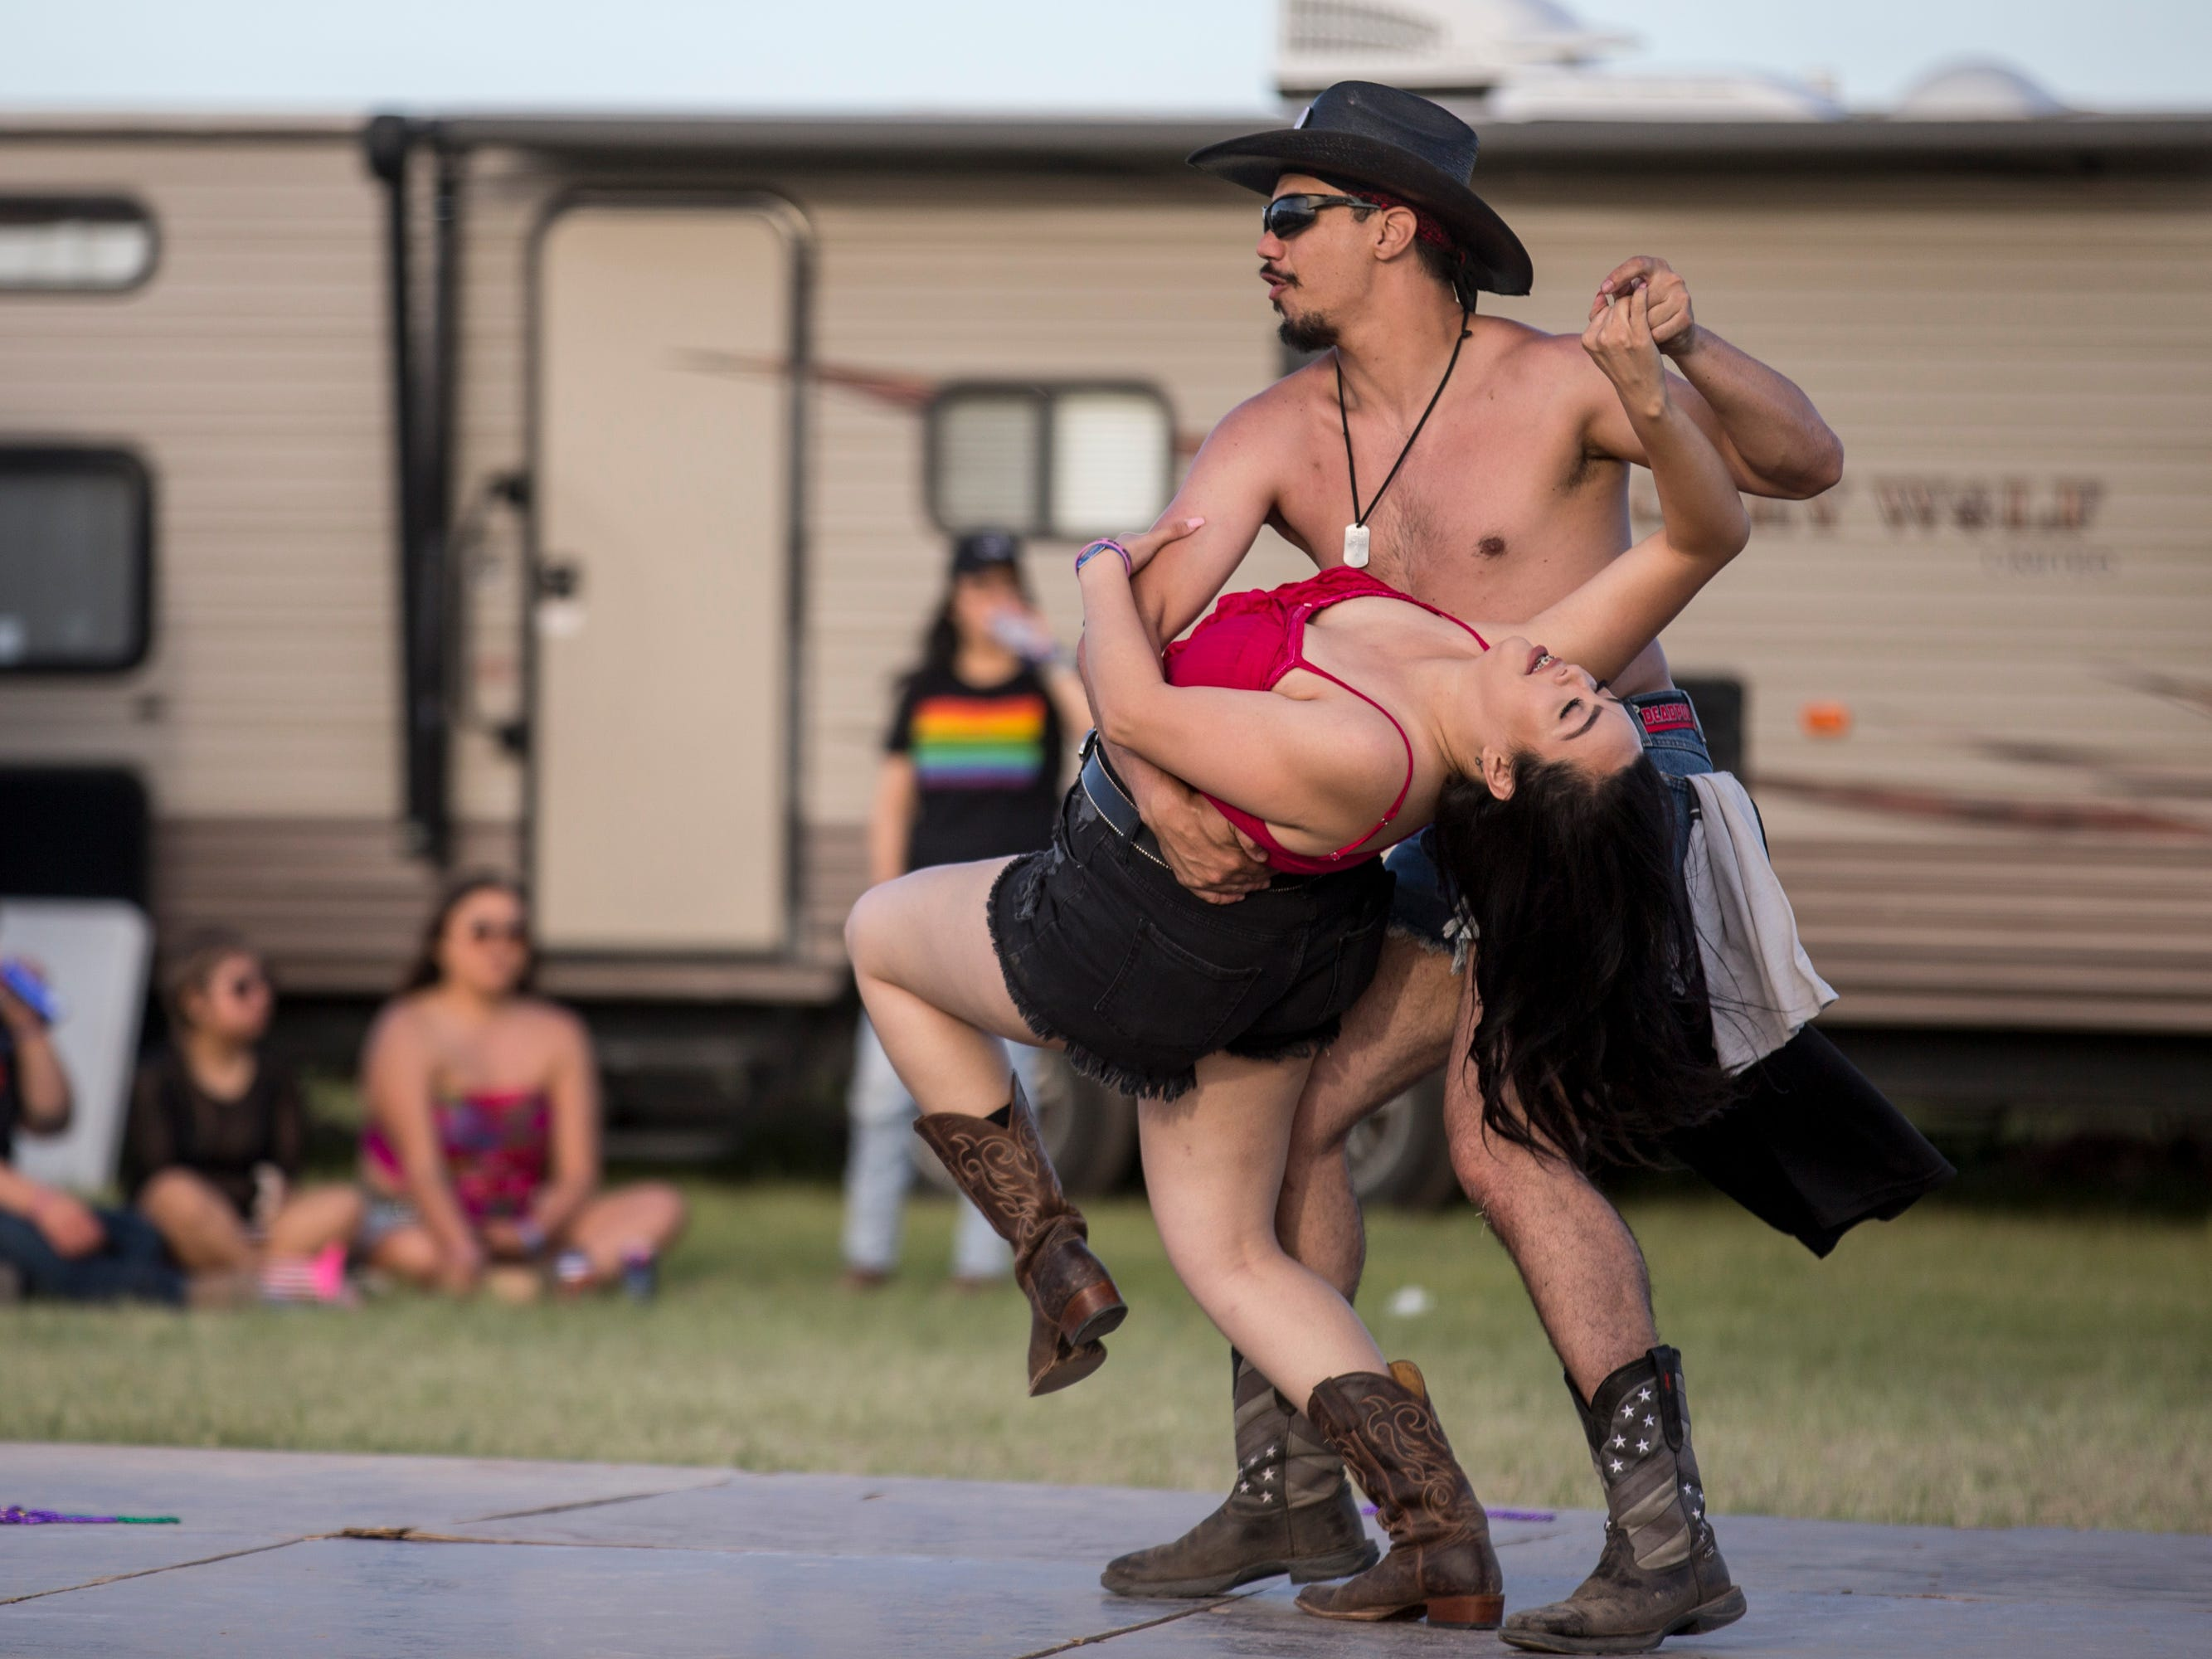 Joseph McCann dips Diana Manzo at the Crazy Coyote campsite during Day 1 of Country Thunder Arizona in Florence, Ariz., on Apr. 11, 2019.